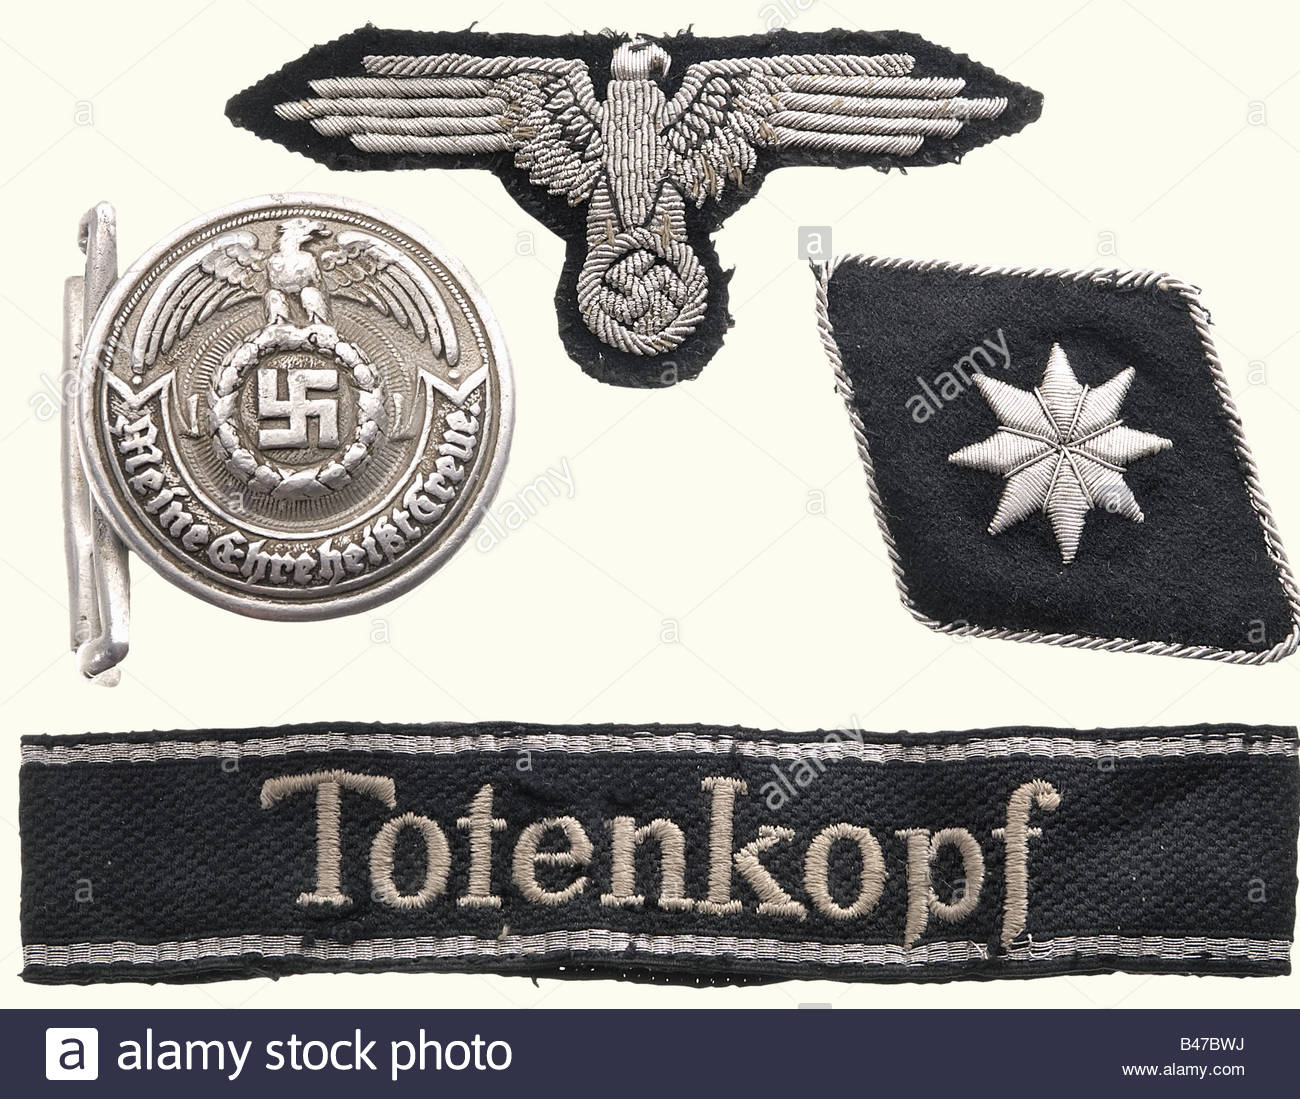 a-belt-buckle-and-insignia-for-an-officer-of-the-ss-totenkopf-division-B47BWJ.jpg